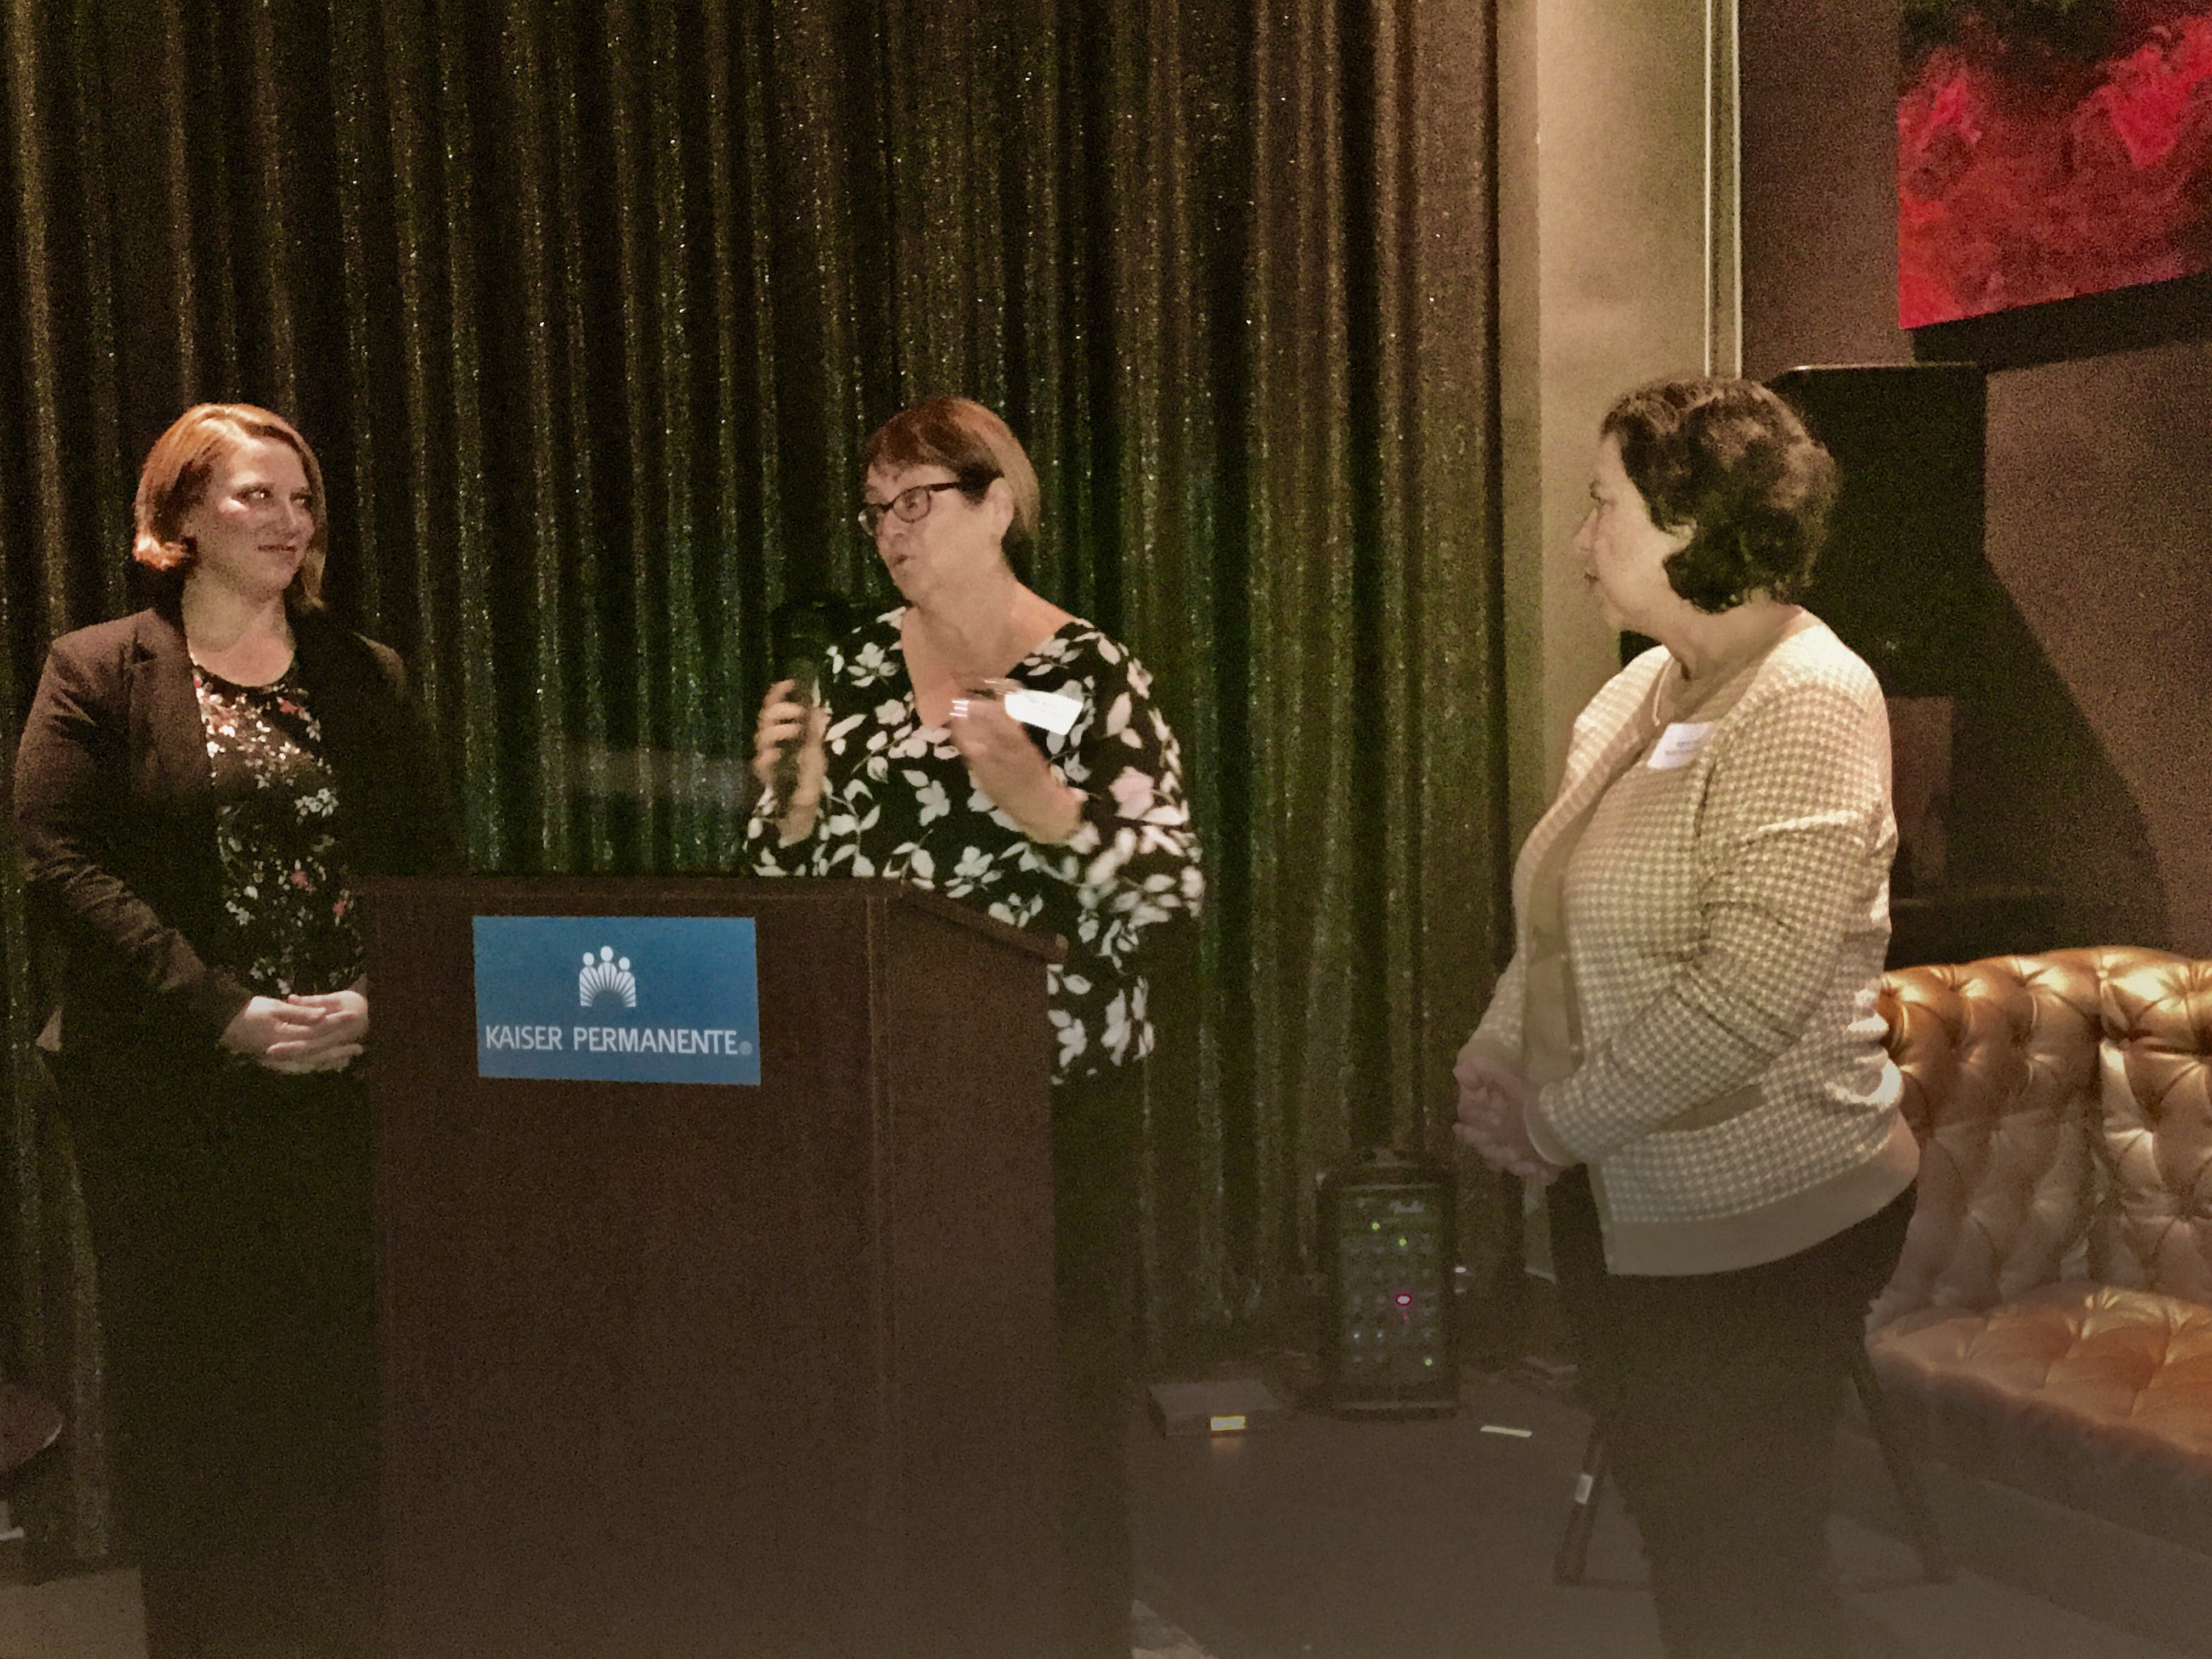 From left, Kristin Weber, Debbie Wood, and Angela Coron.